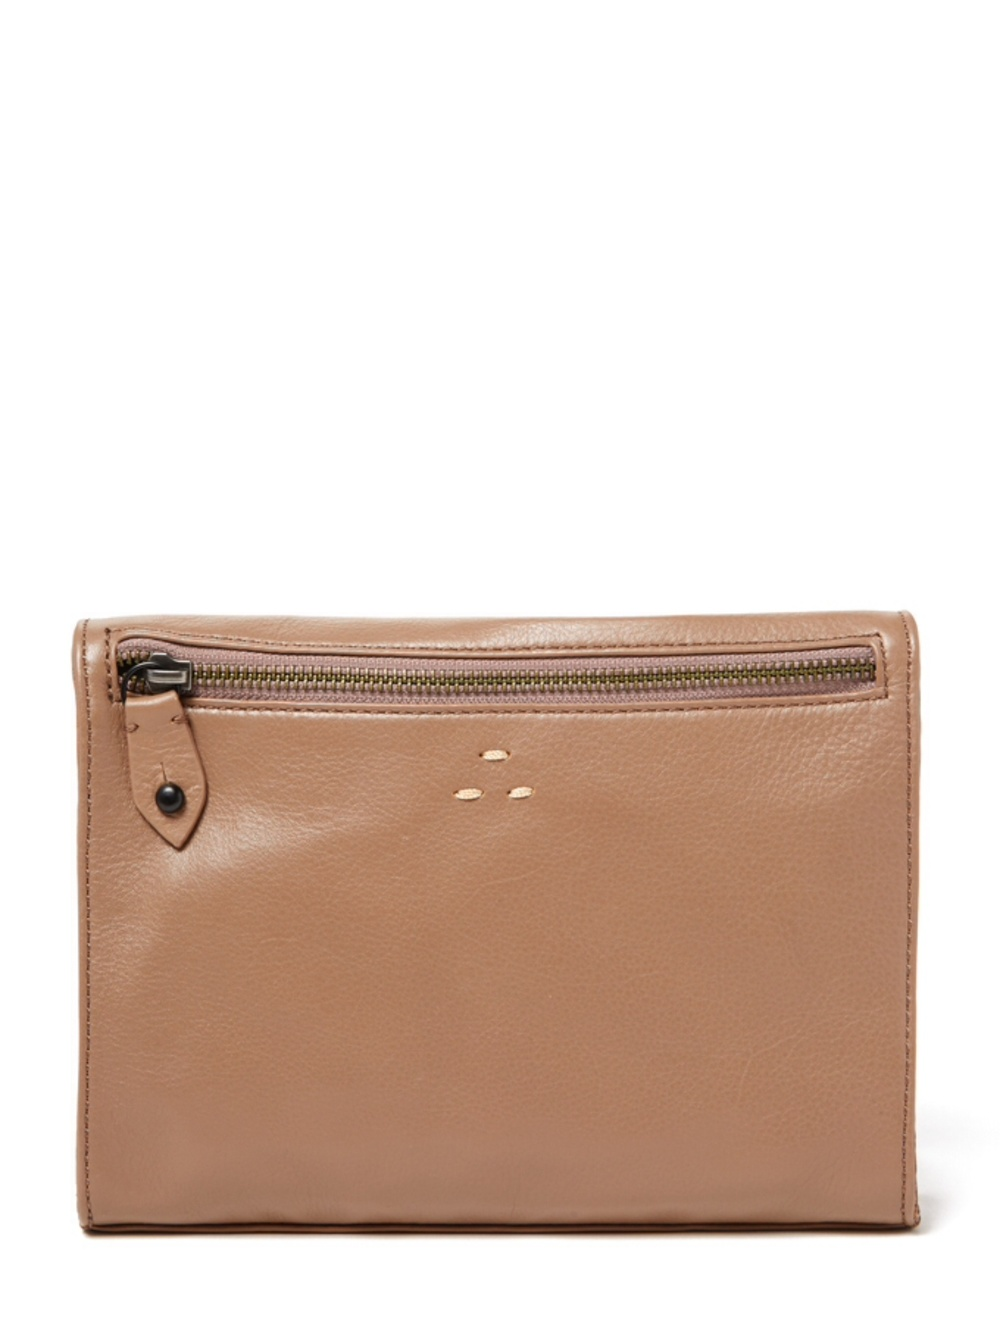 Kelsi Dagger Wythe leather utility cross body